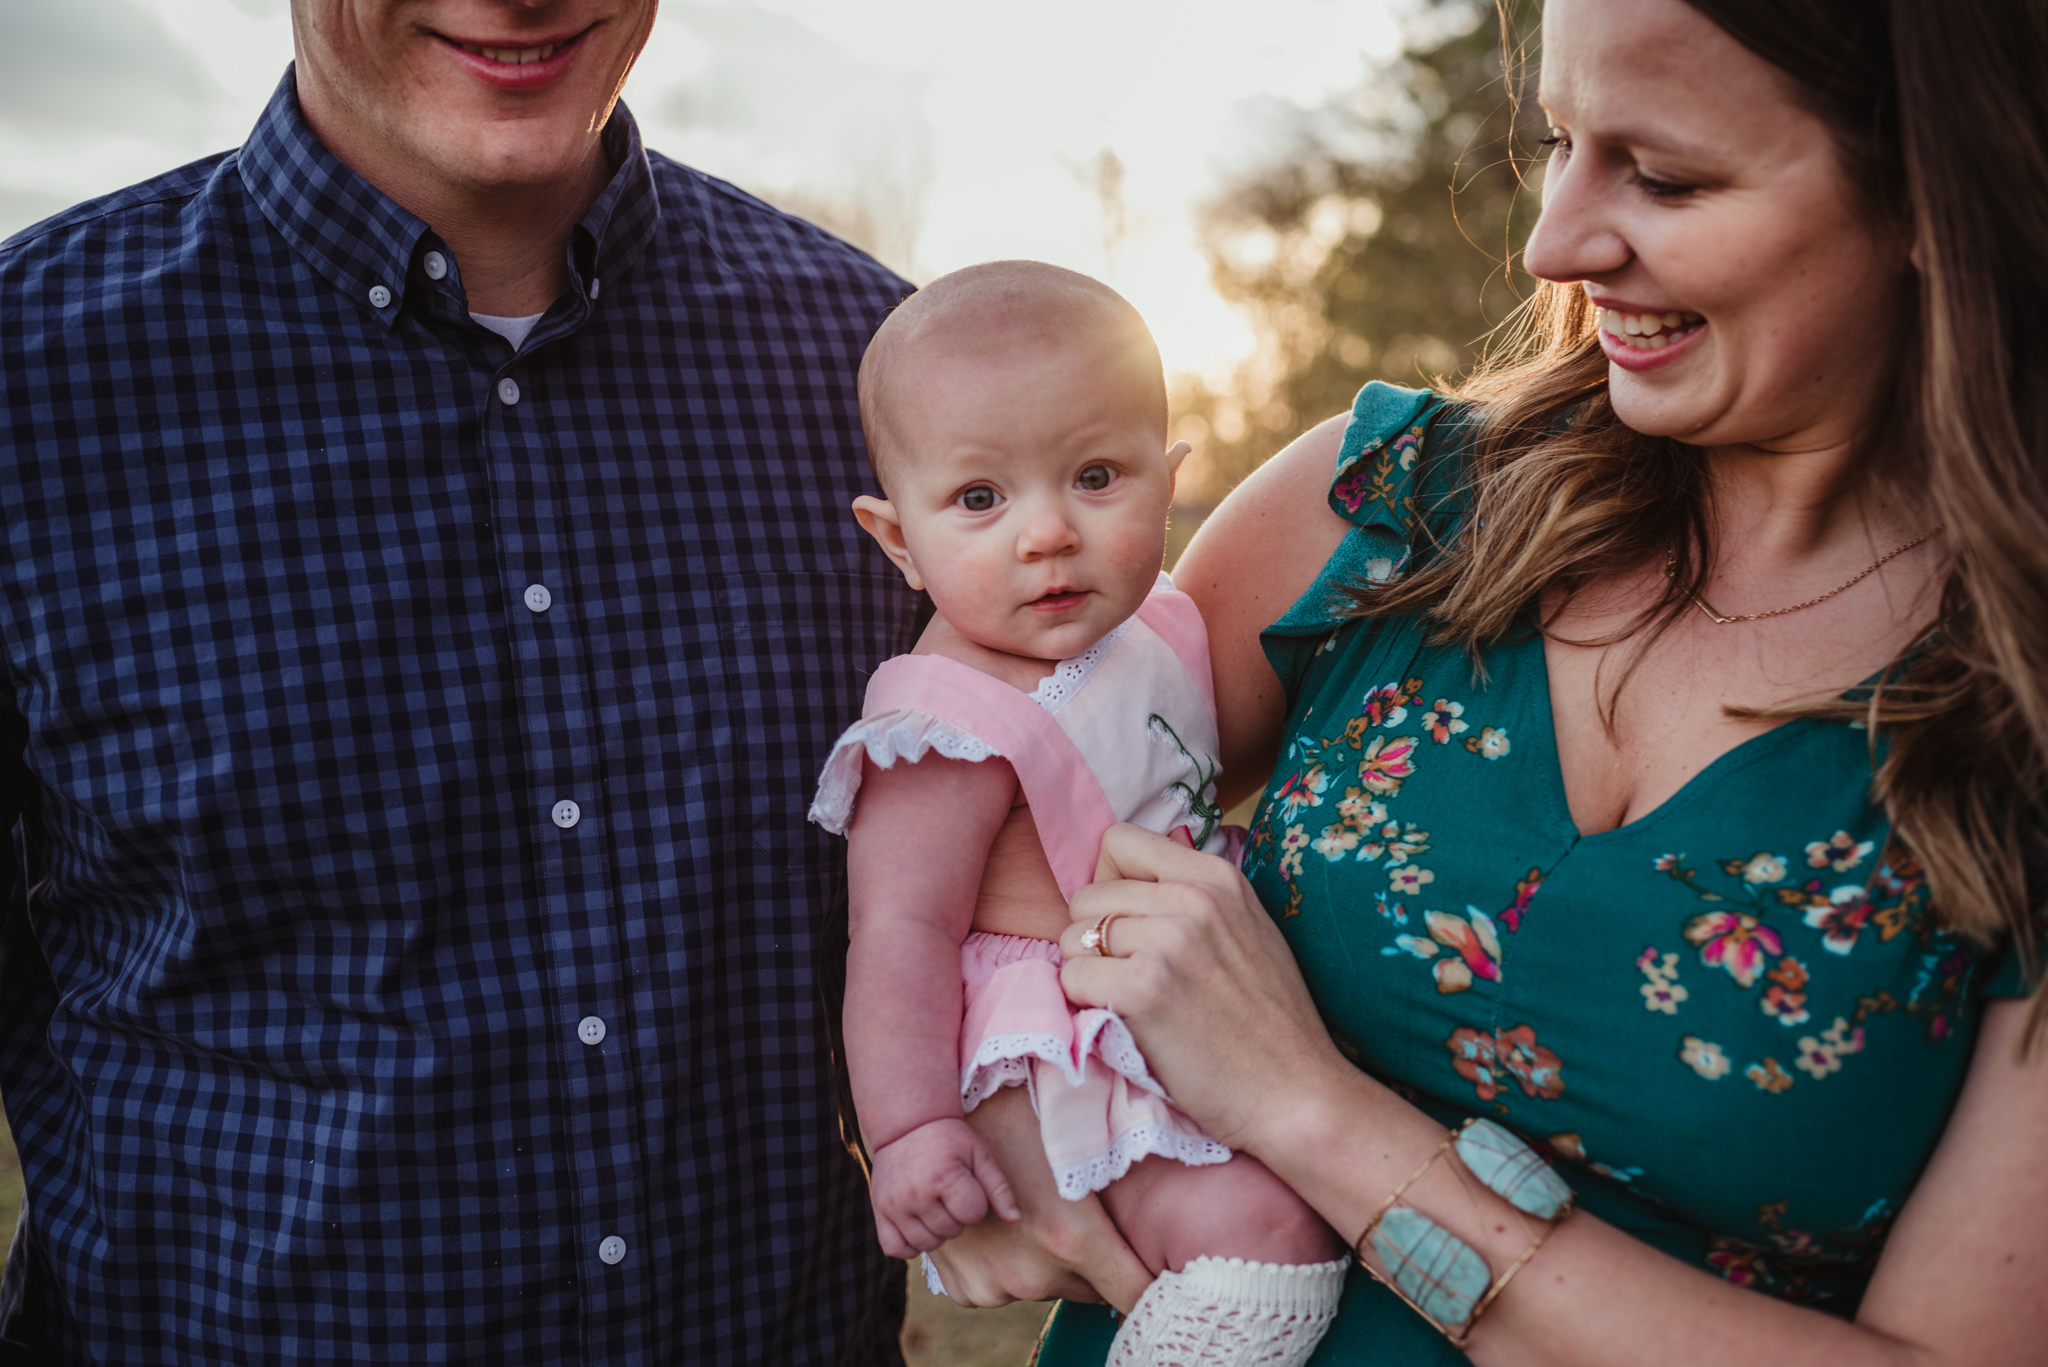 The nine month old poses with her family at sunset during their family photos with Rose Trail Images at Horseshoe Farm Park in Wake Forest, NC.